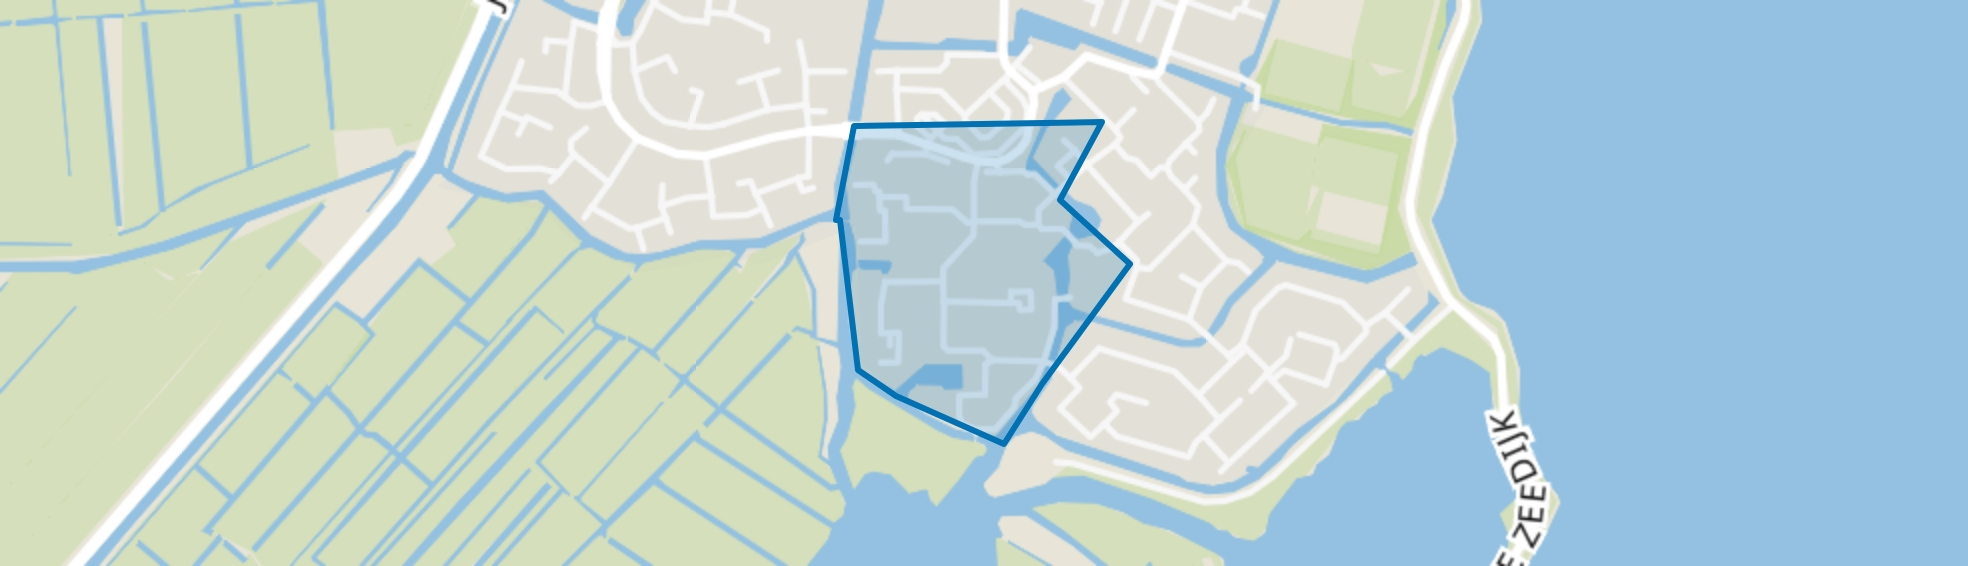 Ooster Ee, Monnickendam map